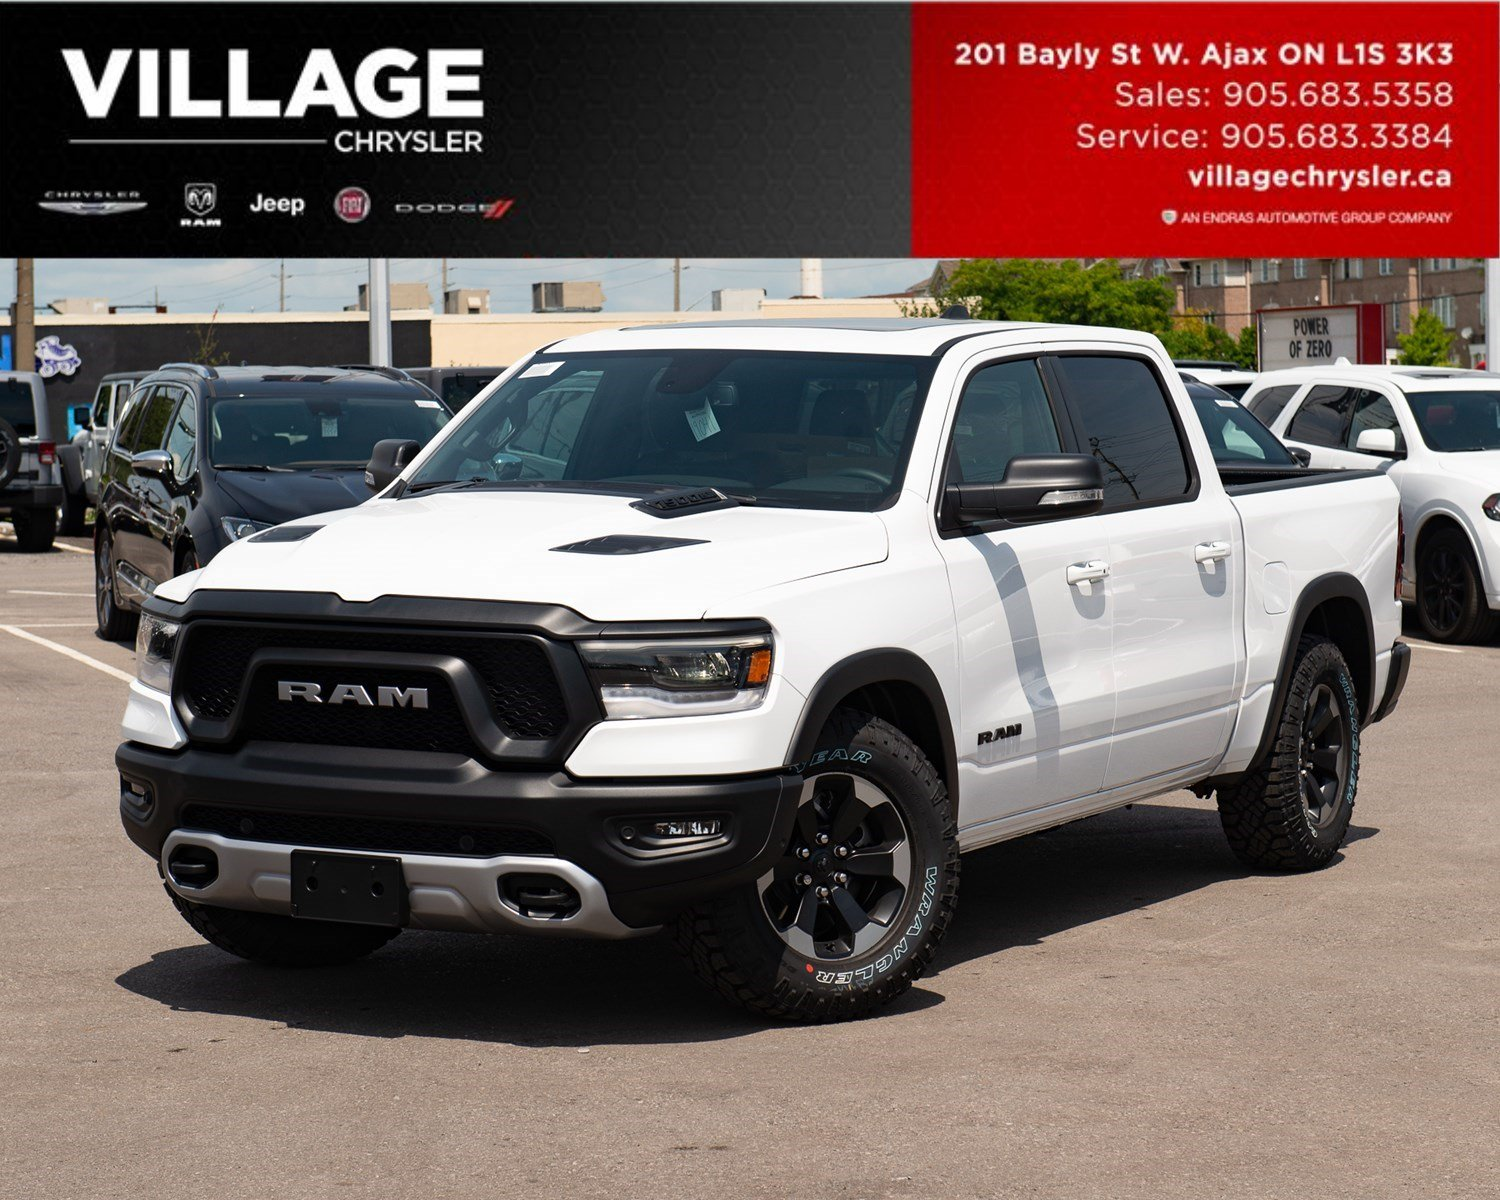 2019 Ram All-New 1500 Rebel|Nav|Sunroof|Off Road Grp|Rebel Level 2 Truck Crew Cab